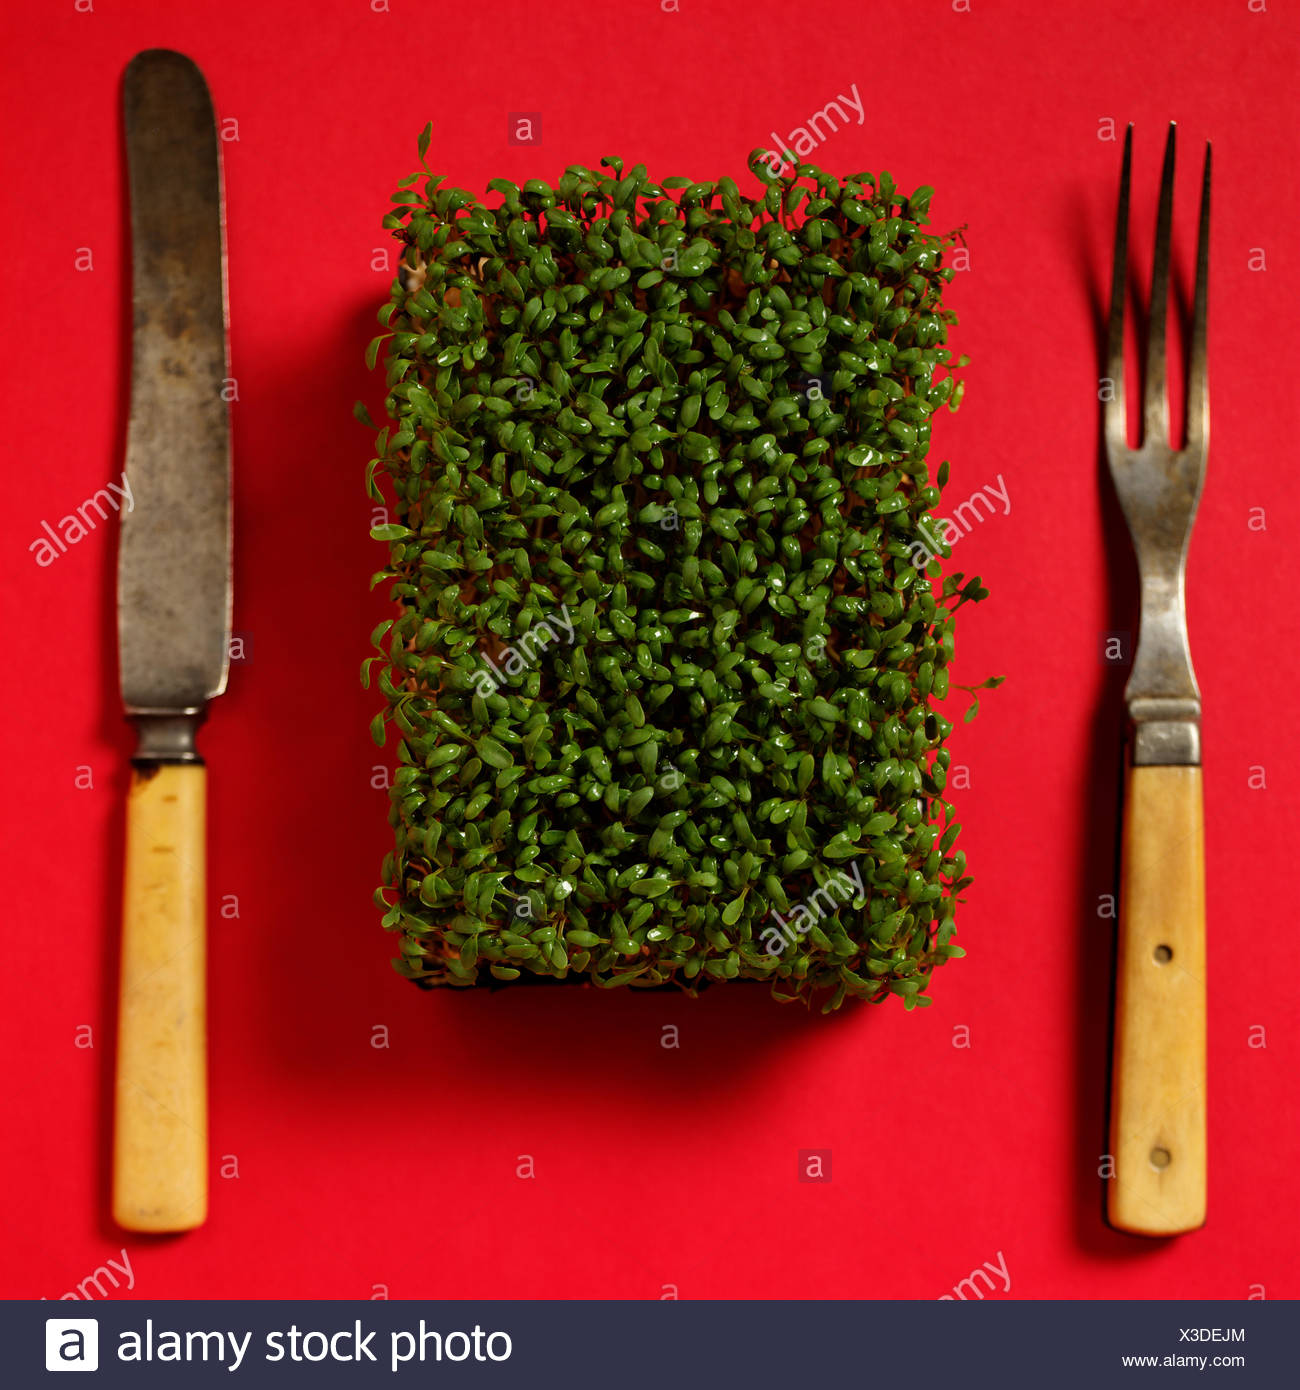 Still Life of Garden Cress with Knife and Fork. - Stock Image